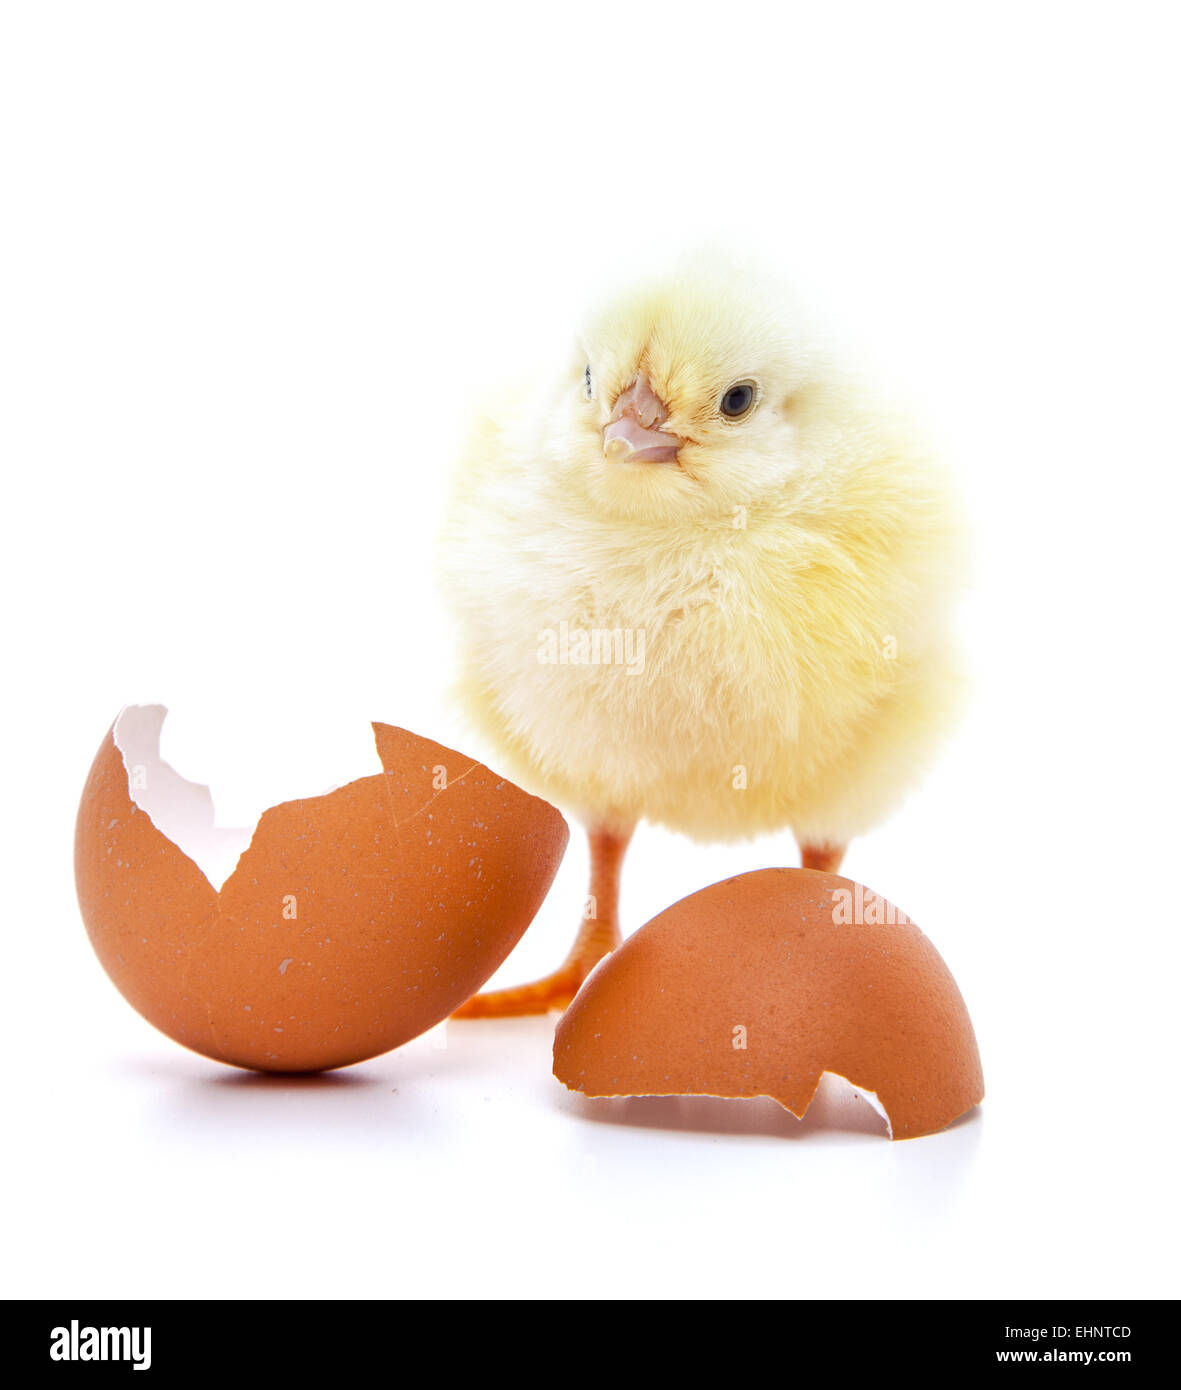 Cute little chick on white background - Stock Image